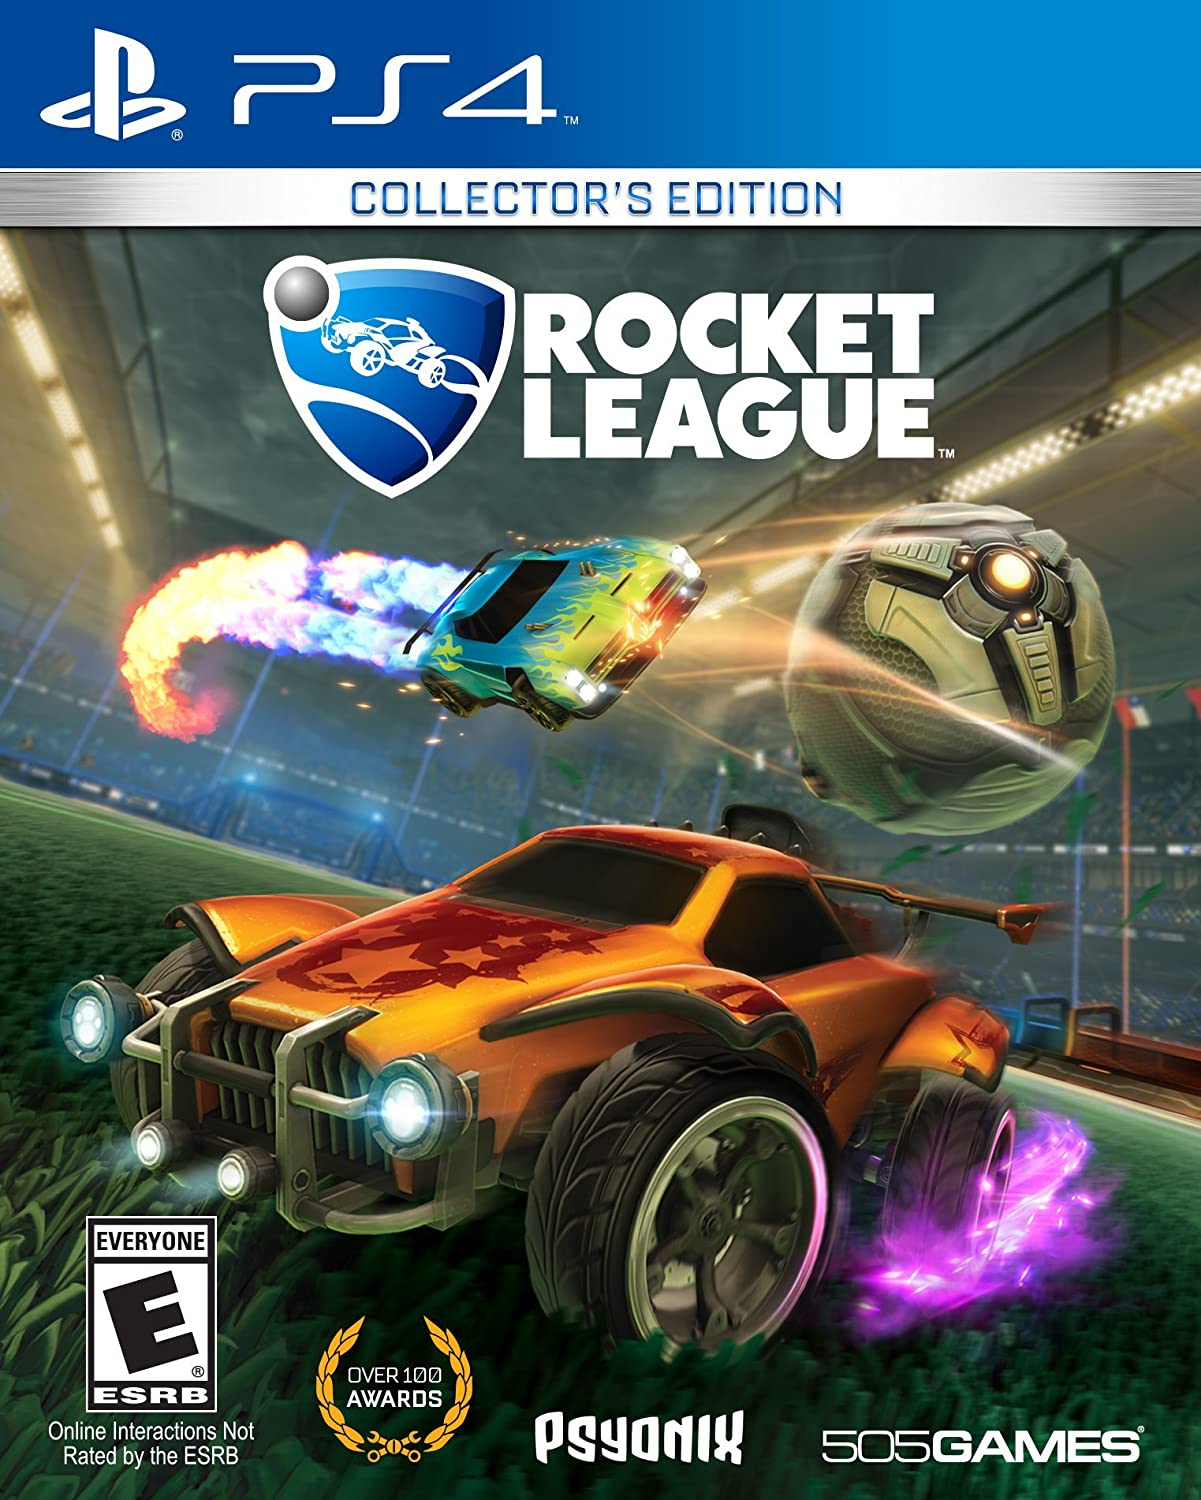 Rocket League Collectors Edition Playstation 4 505 Ps4 Tekken 7 Region 3 Bonus Lego Toys Games Video